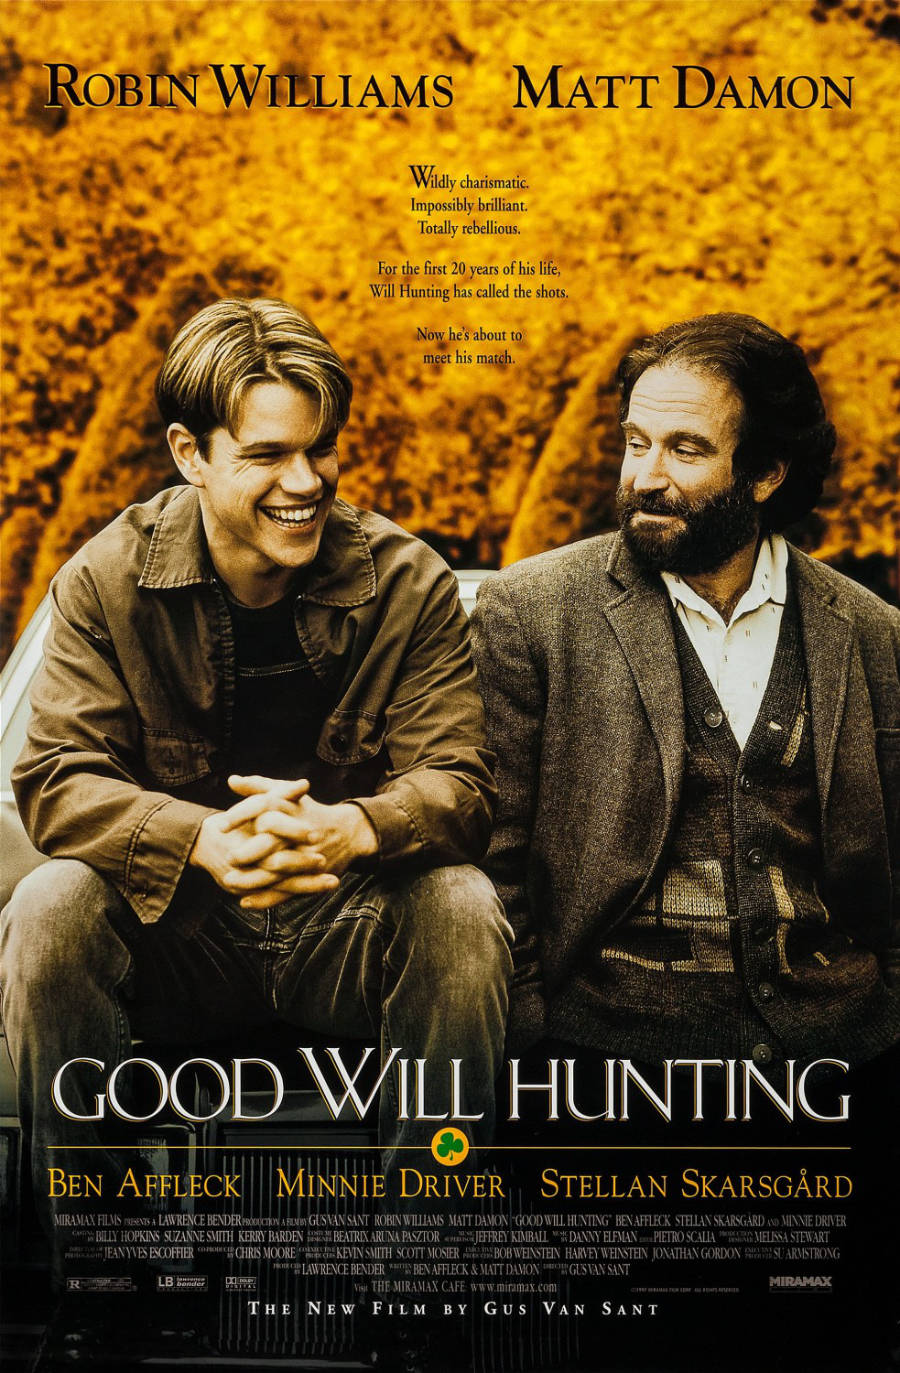 Retro Film Review: Good Will Hunting